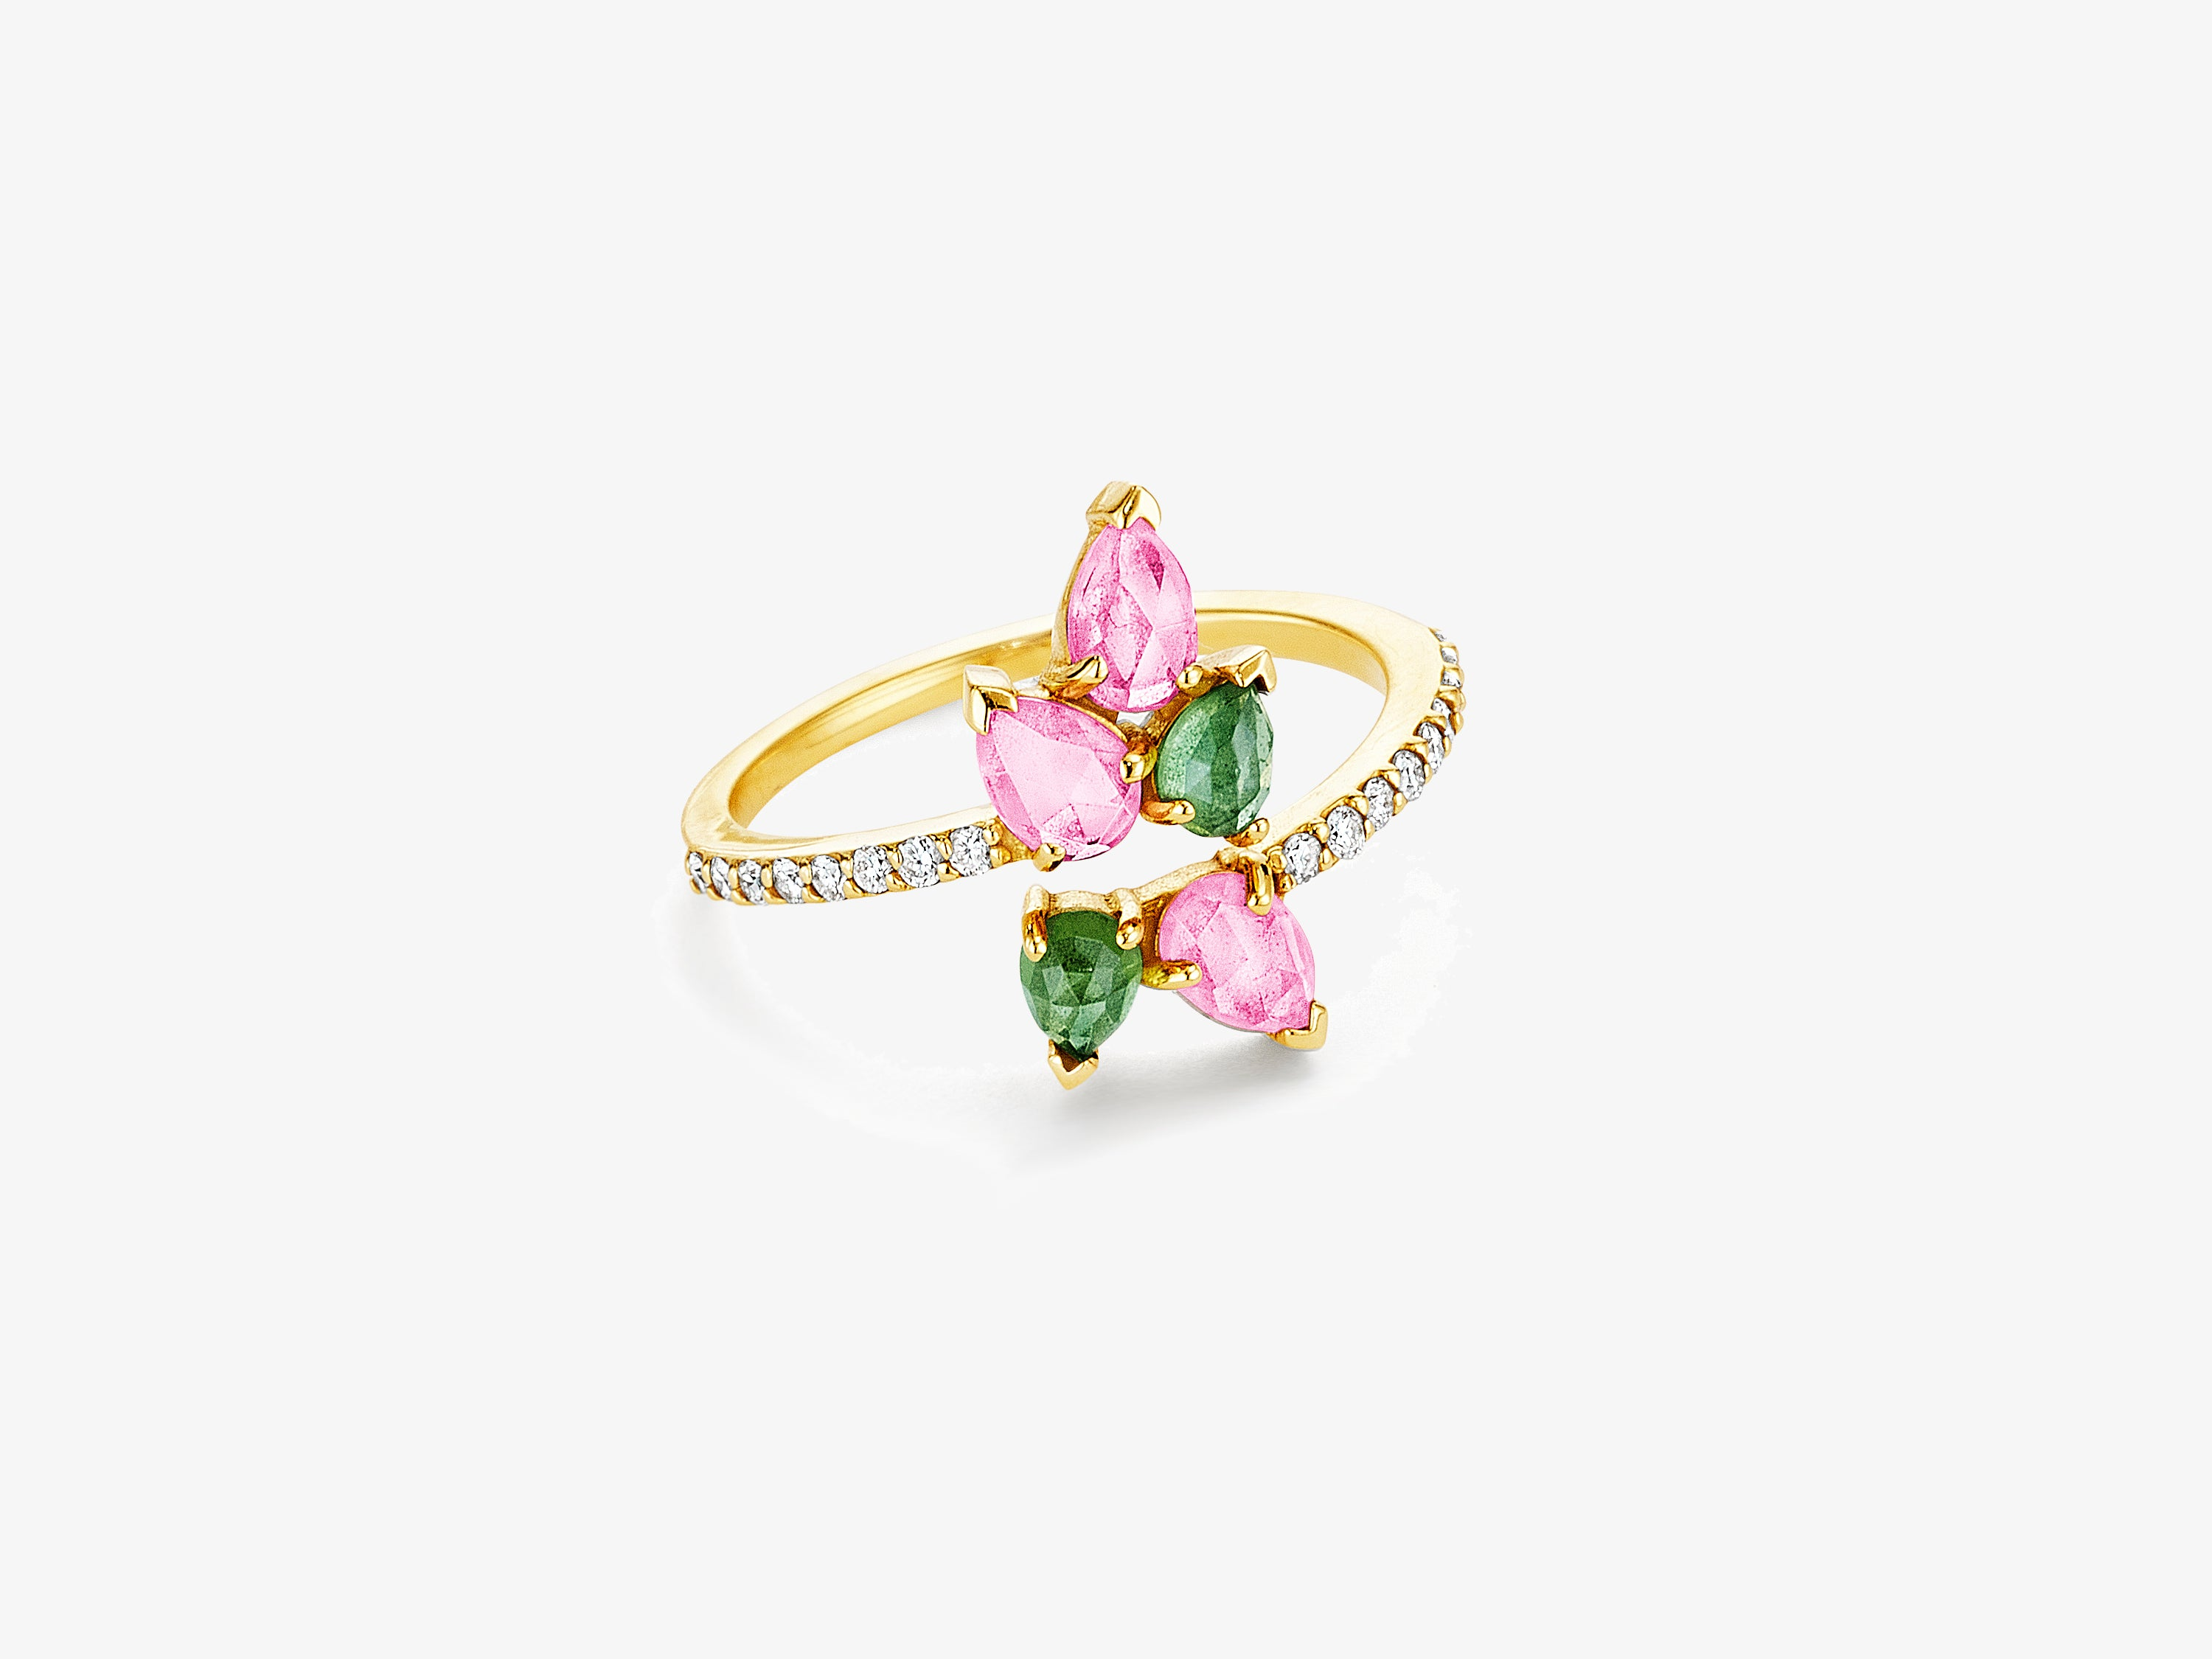 Asymmetrical Diamond Pave Ring with Pear Shaped Gemstone Cluster Details